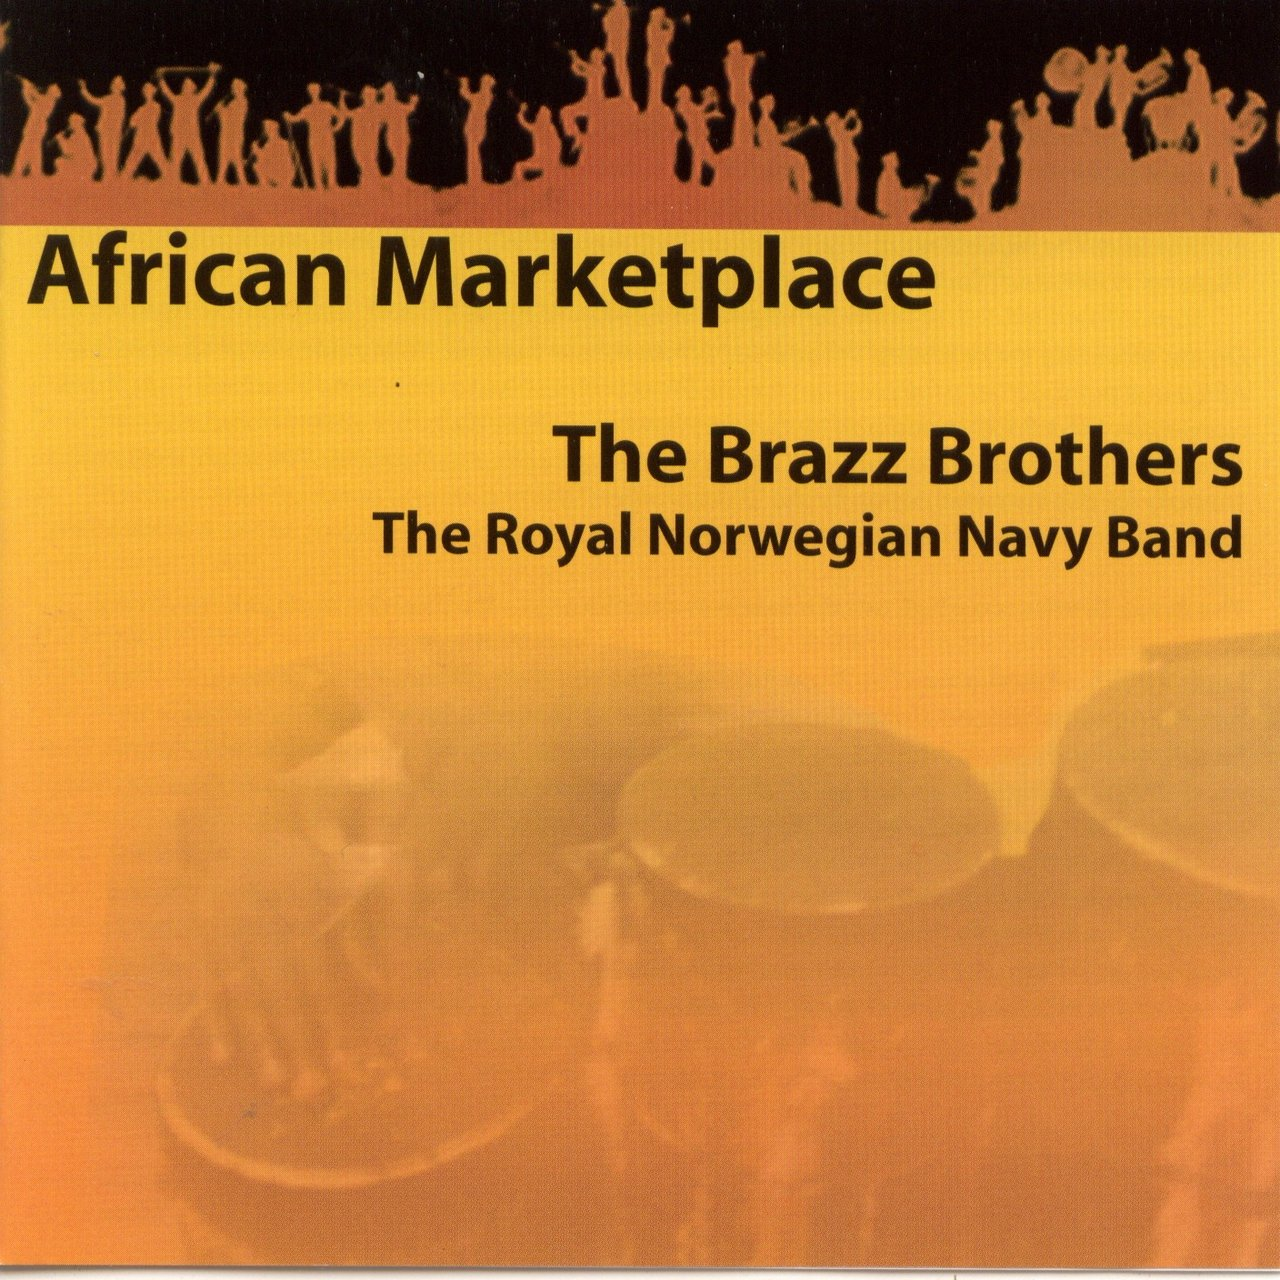 African Marketplace (w/ The Royal Norwegian Navy Band)